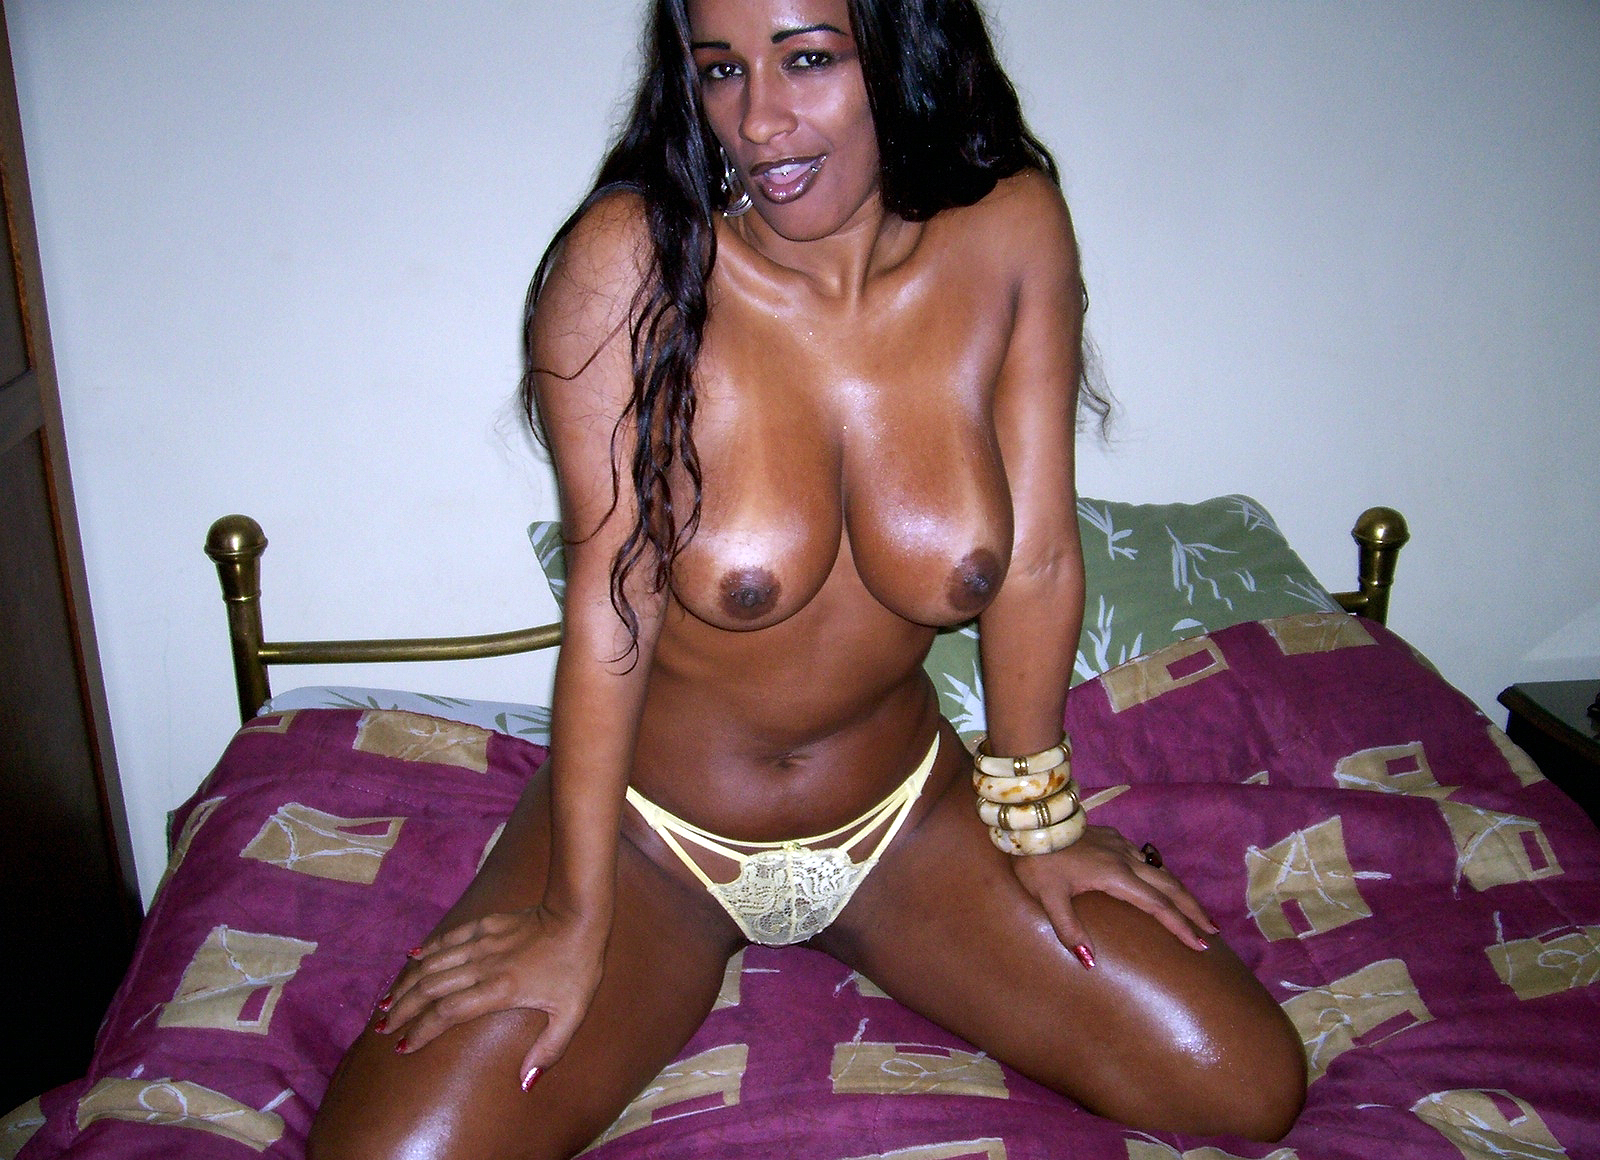 Homemade Sex pictures of Amateur black Housewives. Image #5